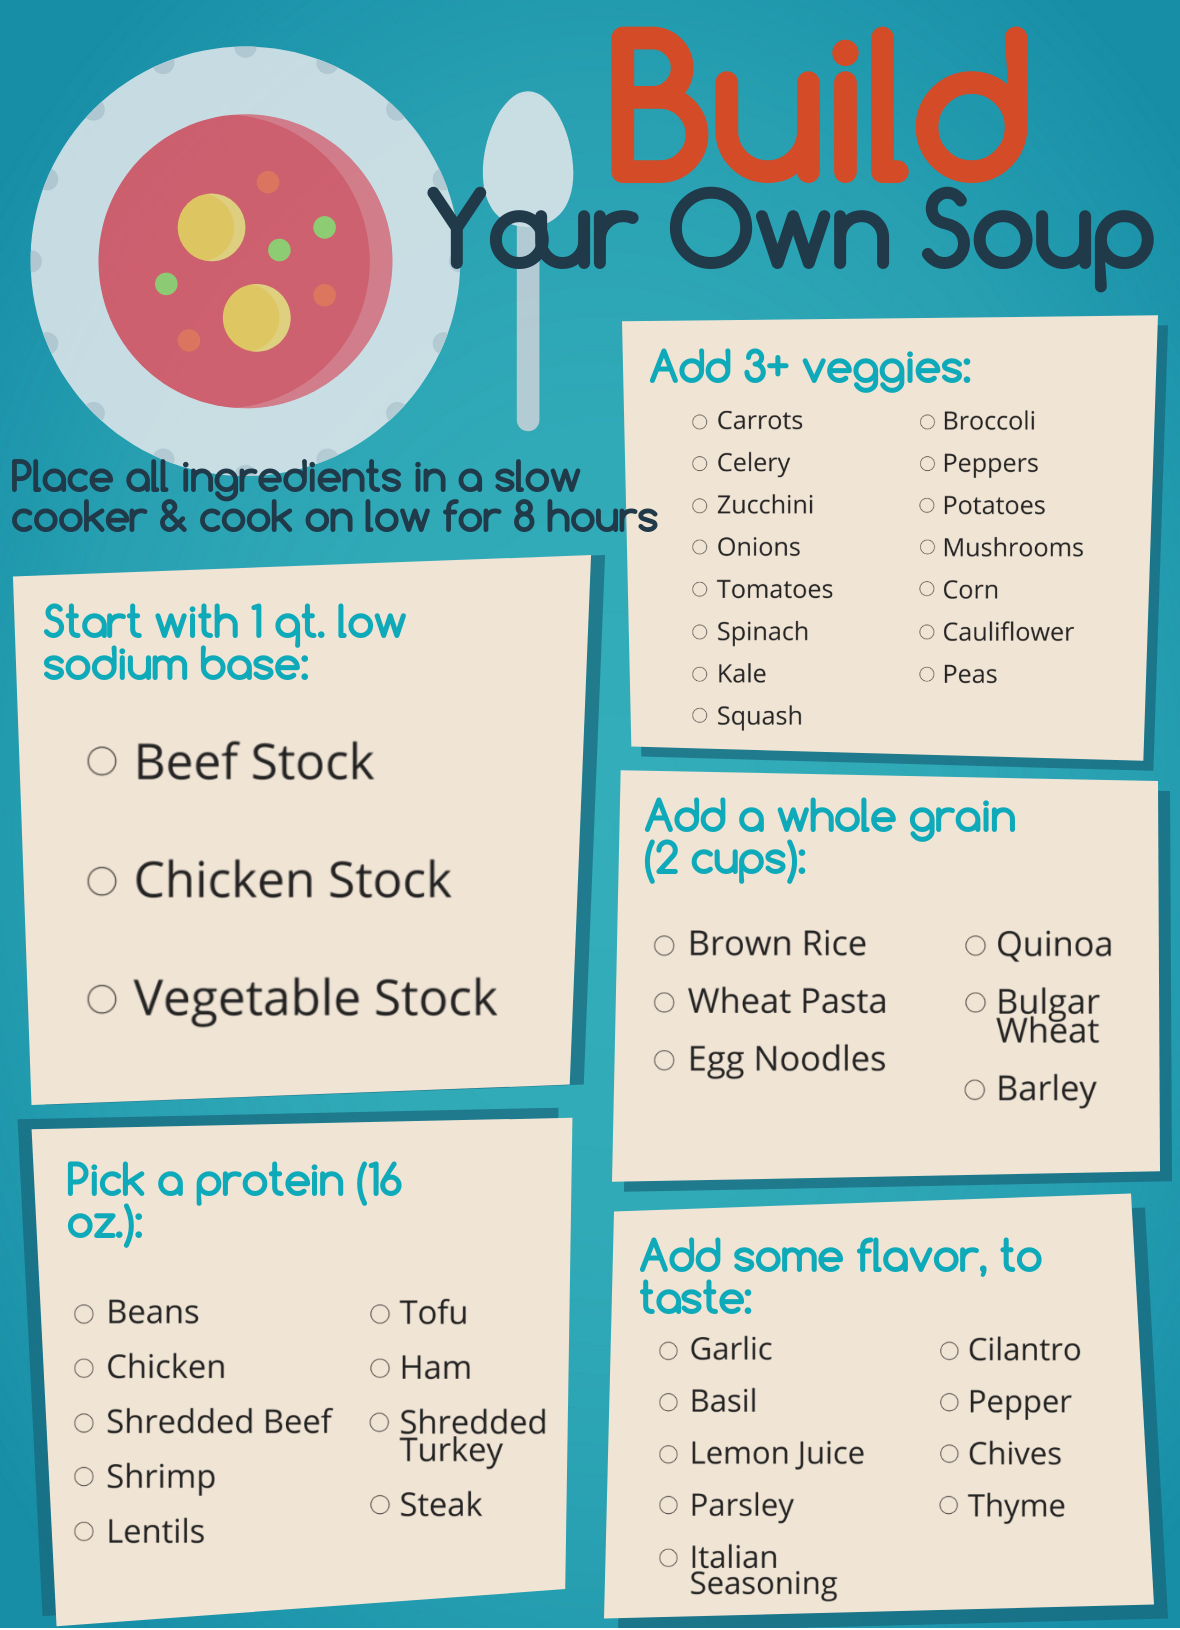 Image of the Build Your Own Soup Fareway pamphlet.